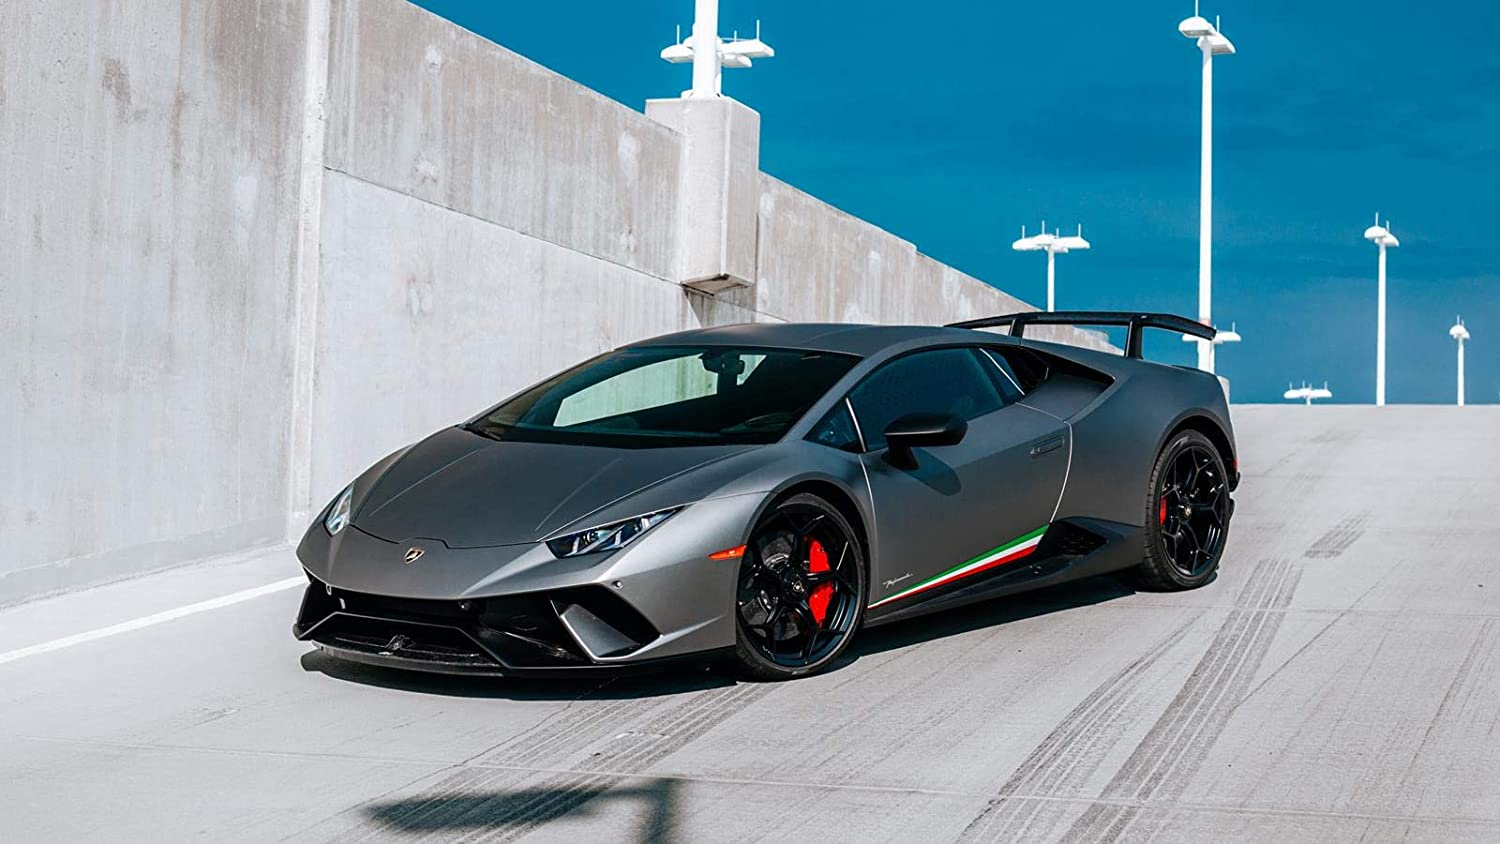 Amazon.com Lamborghini Huracan Performante Car Poster Print